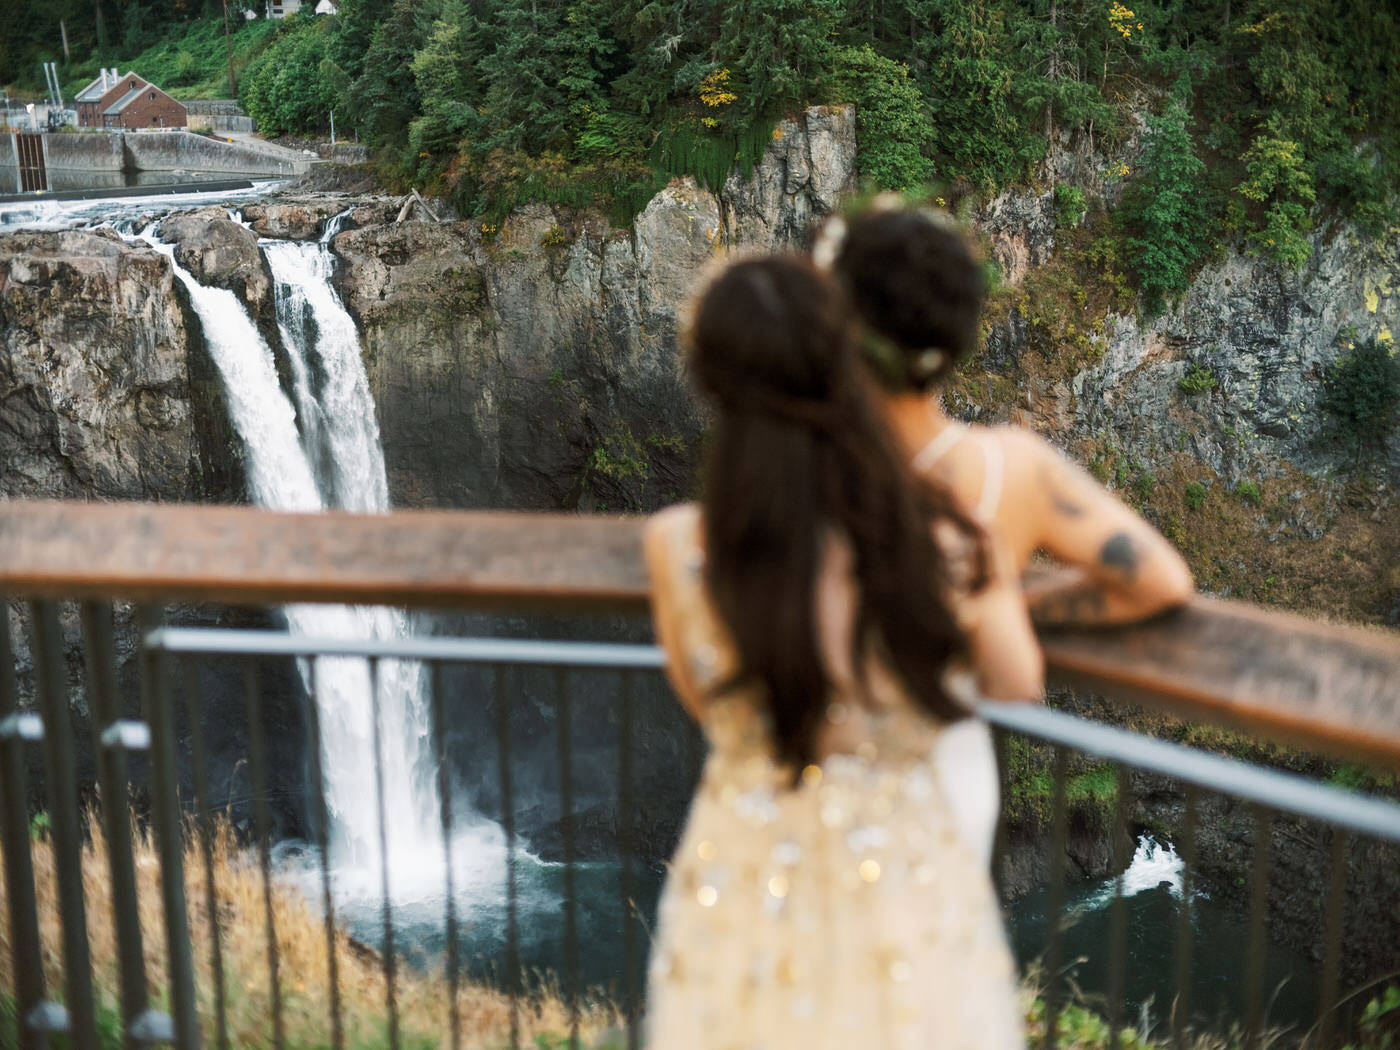 234-pacific-northwest-wedding-photography-by-ryan-flynn.jpg